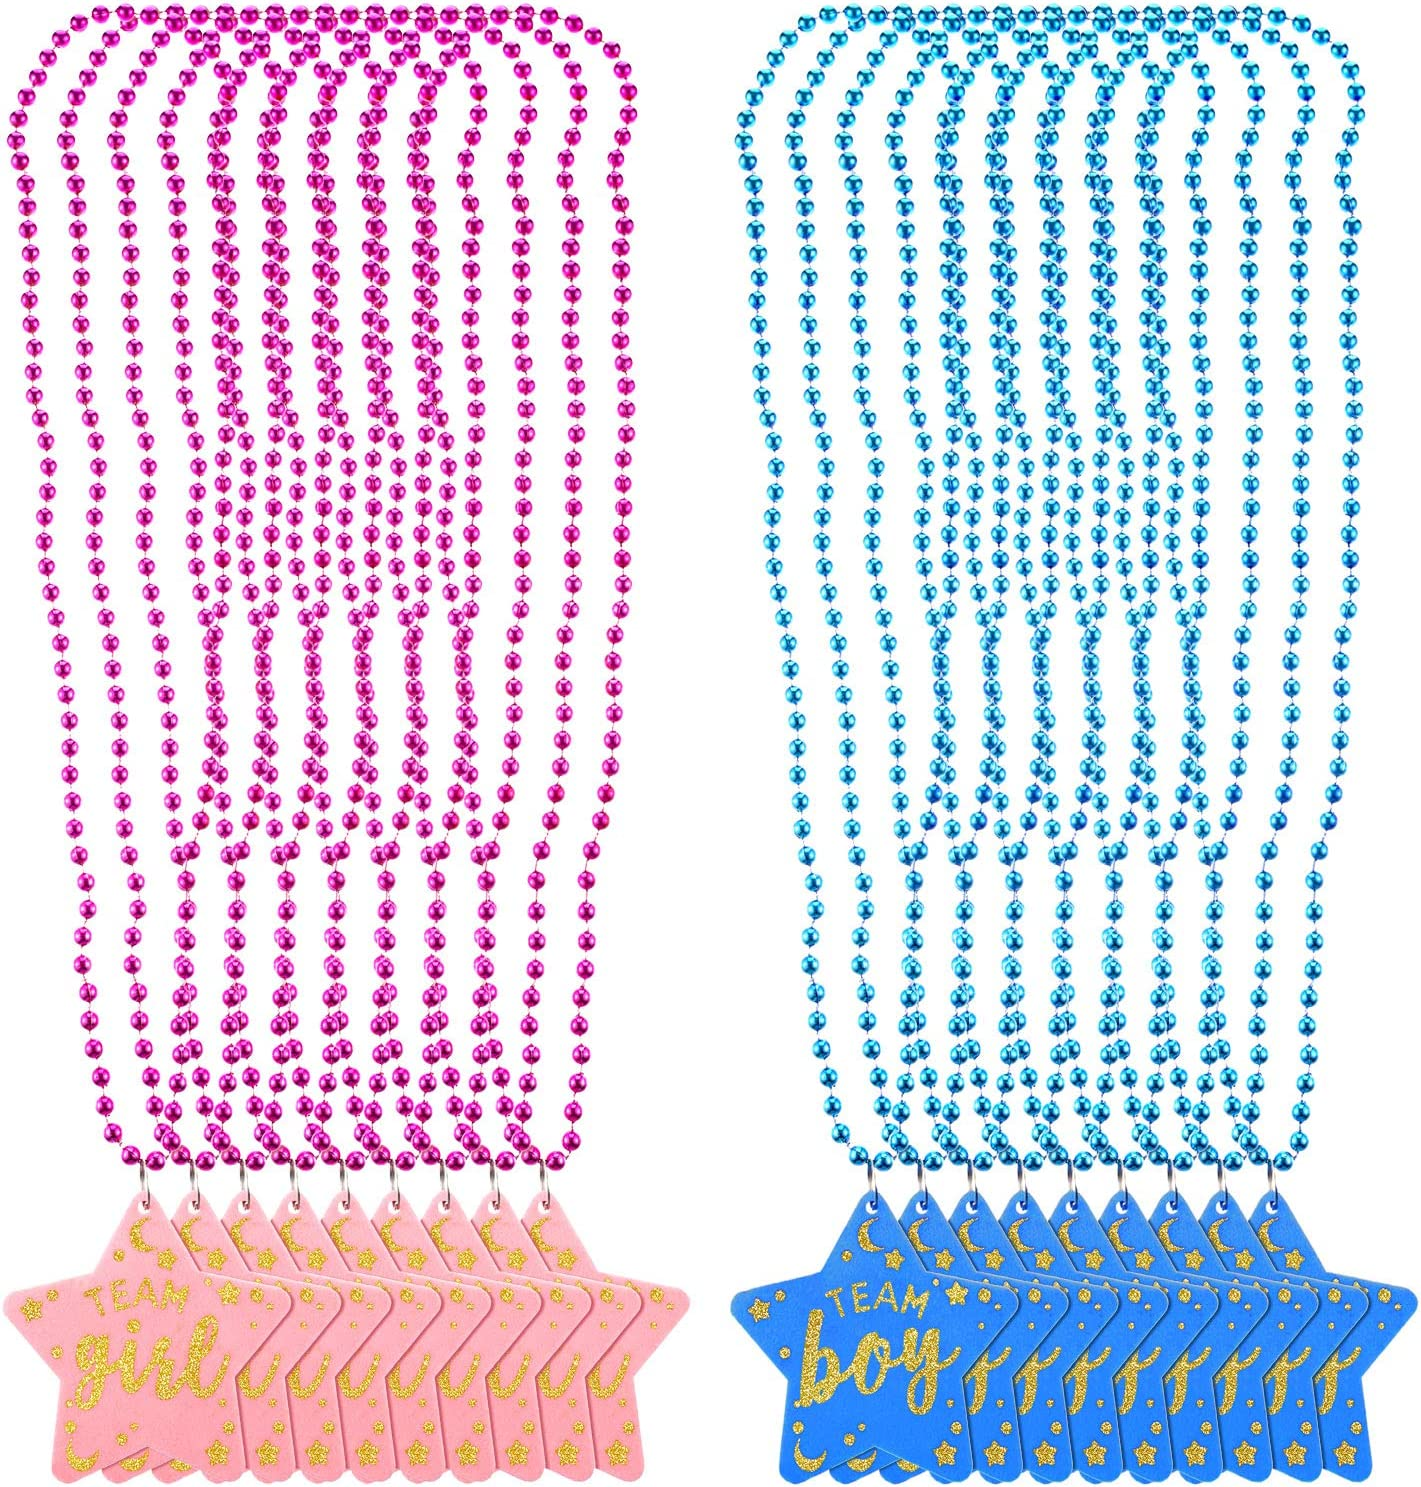 18 Pieces Baby Gender Reveal Beads 5 mm Round Bead Necklaces with Team Boy Team Girl Felt Pendant Ornaments for Gender Reveal Party Baby Shower, Pink and Blue